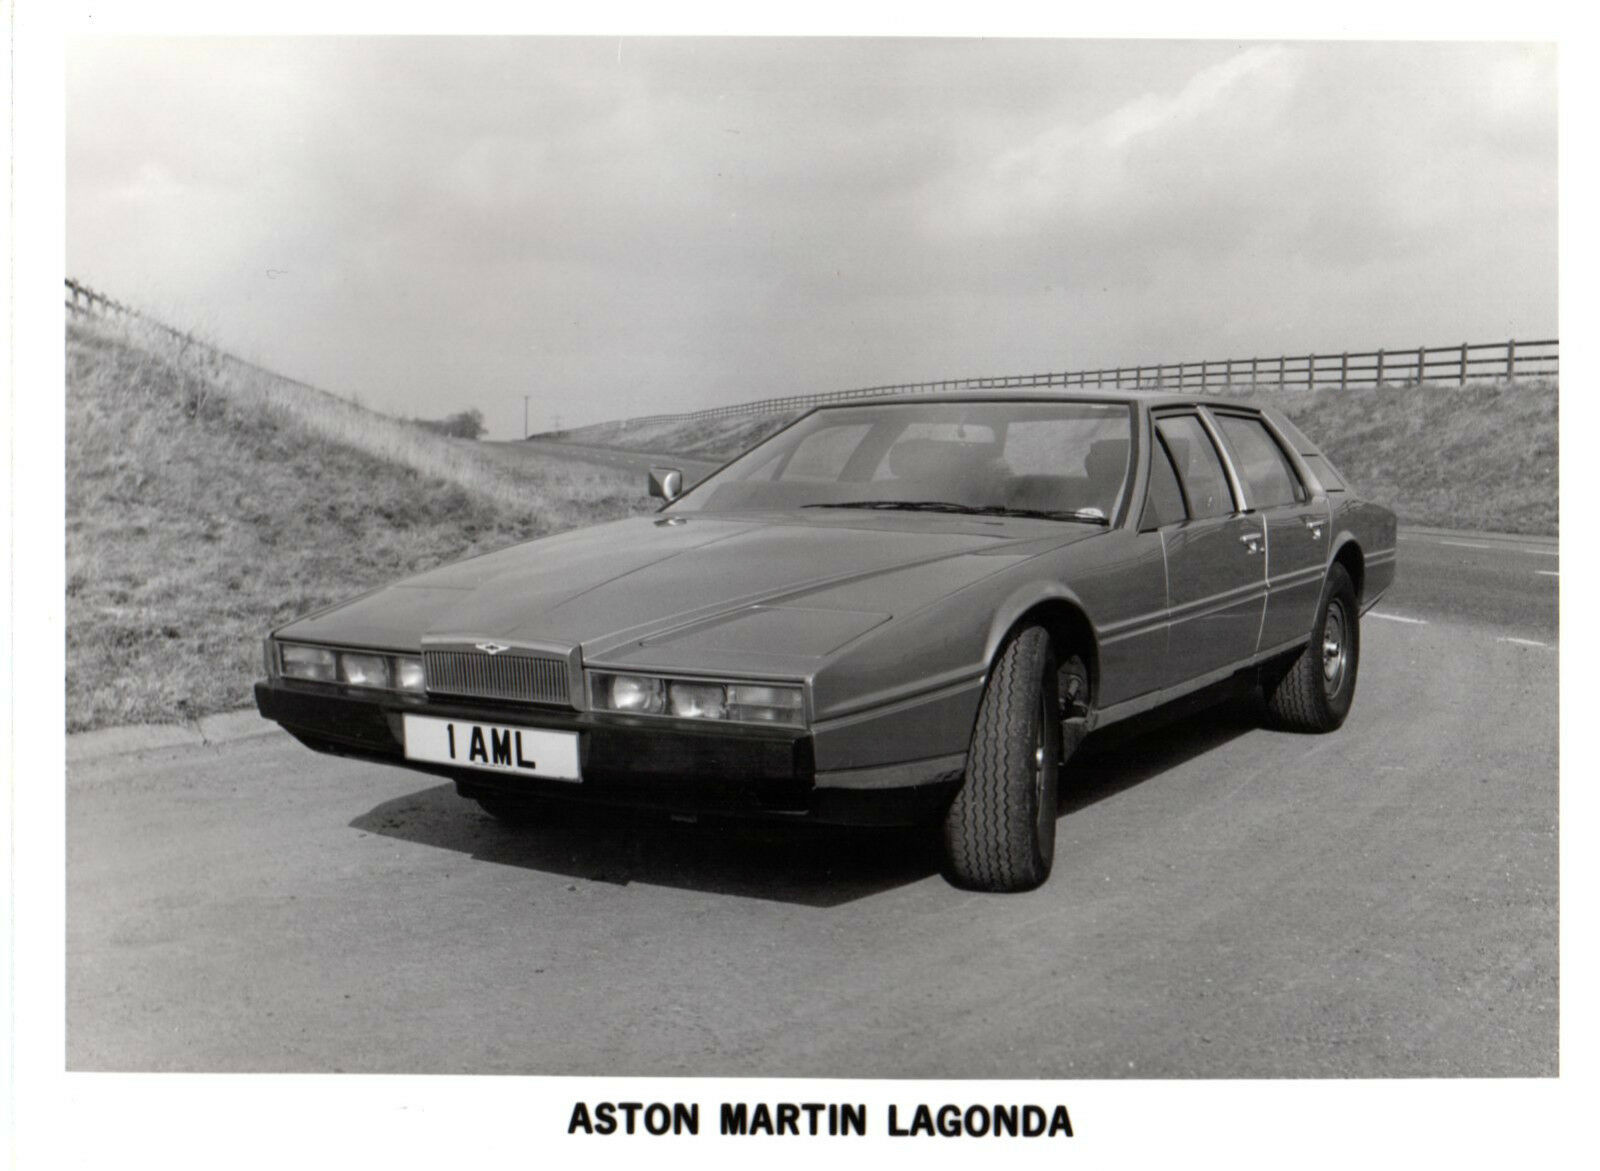 The factory had 1 AML in the 80s. AML 1    Page 3   Aston Martin   PistonHeads